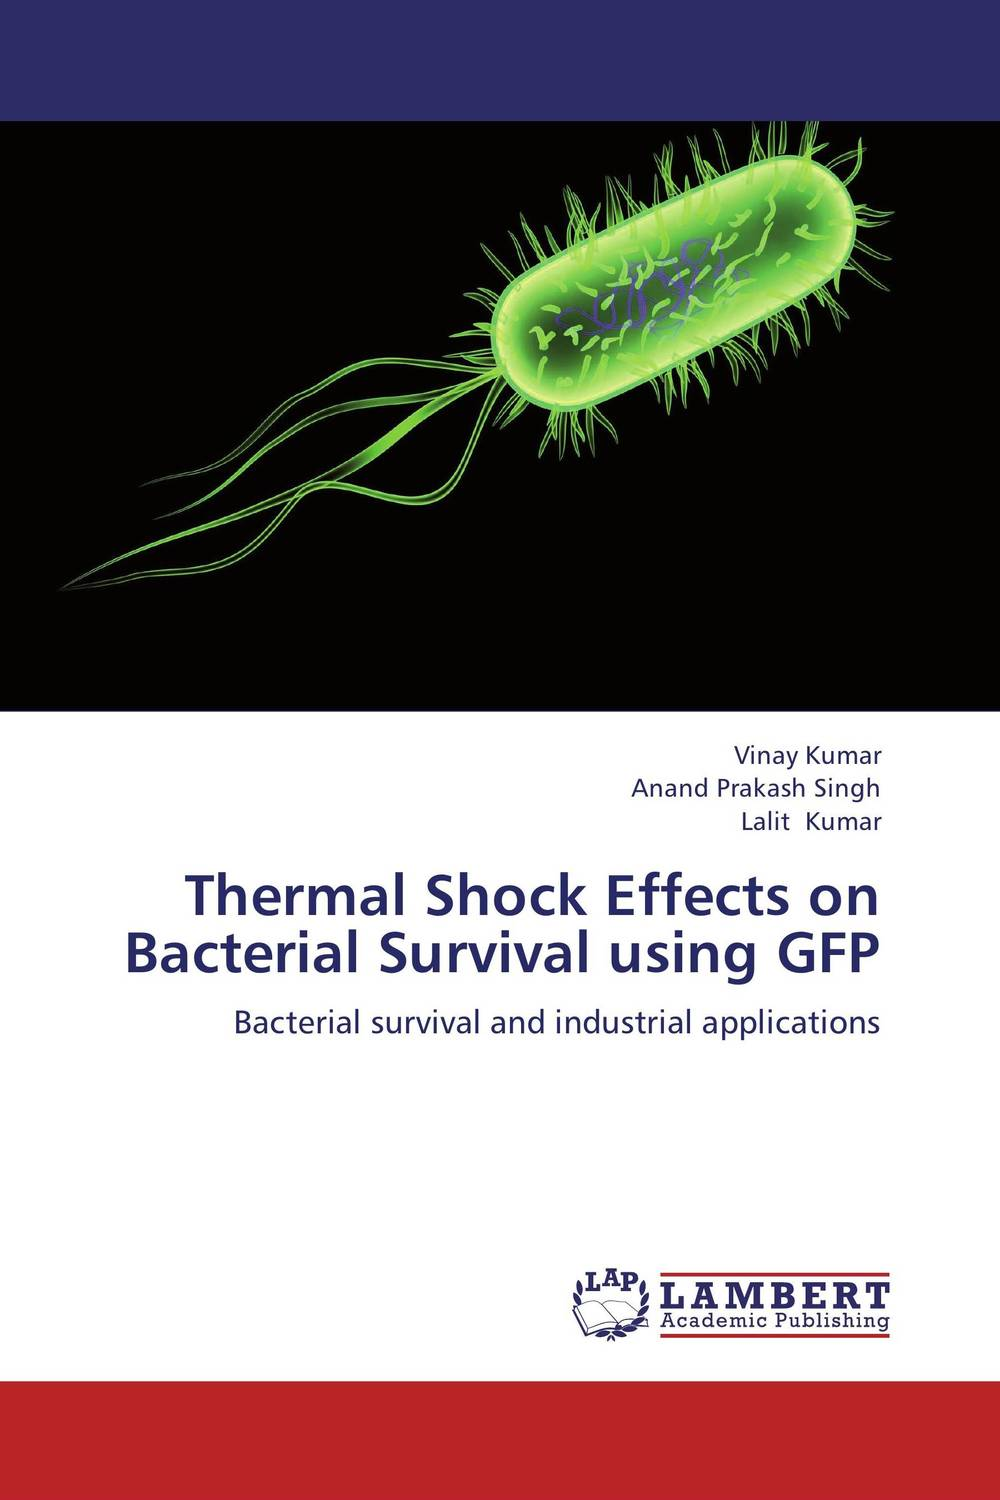 Thermal Shock Effects on Bacterial Survival using GFP vinay kumar anand prakash singh and lalit kumar thermal shock effects on bacterial survival using gfp